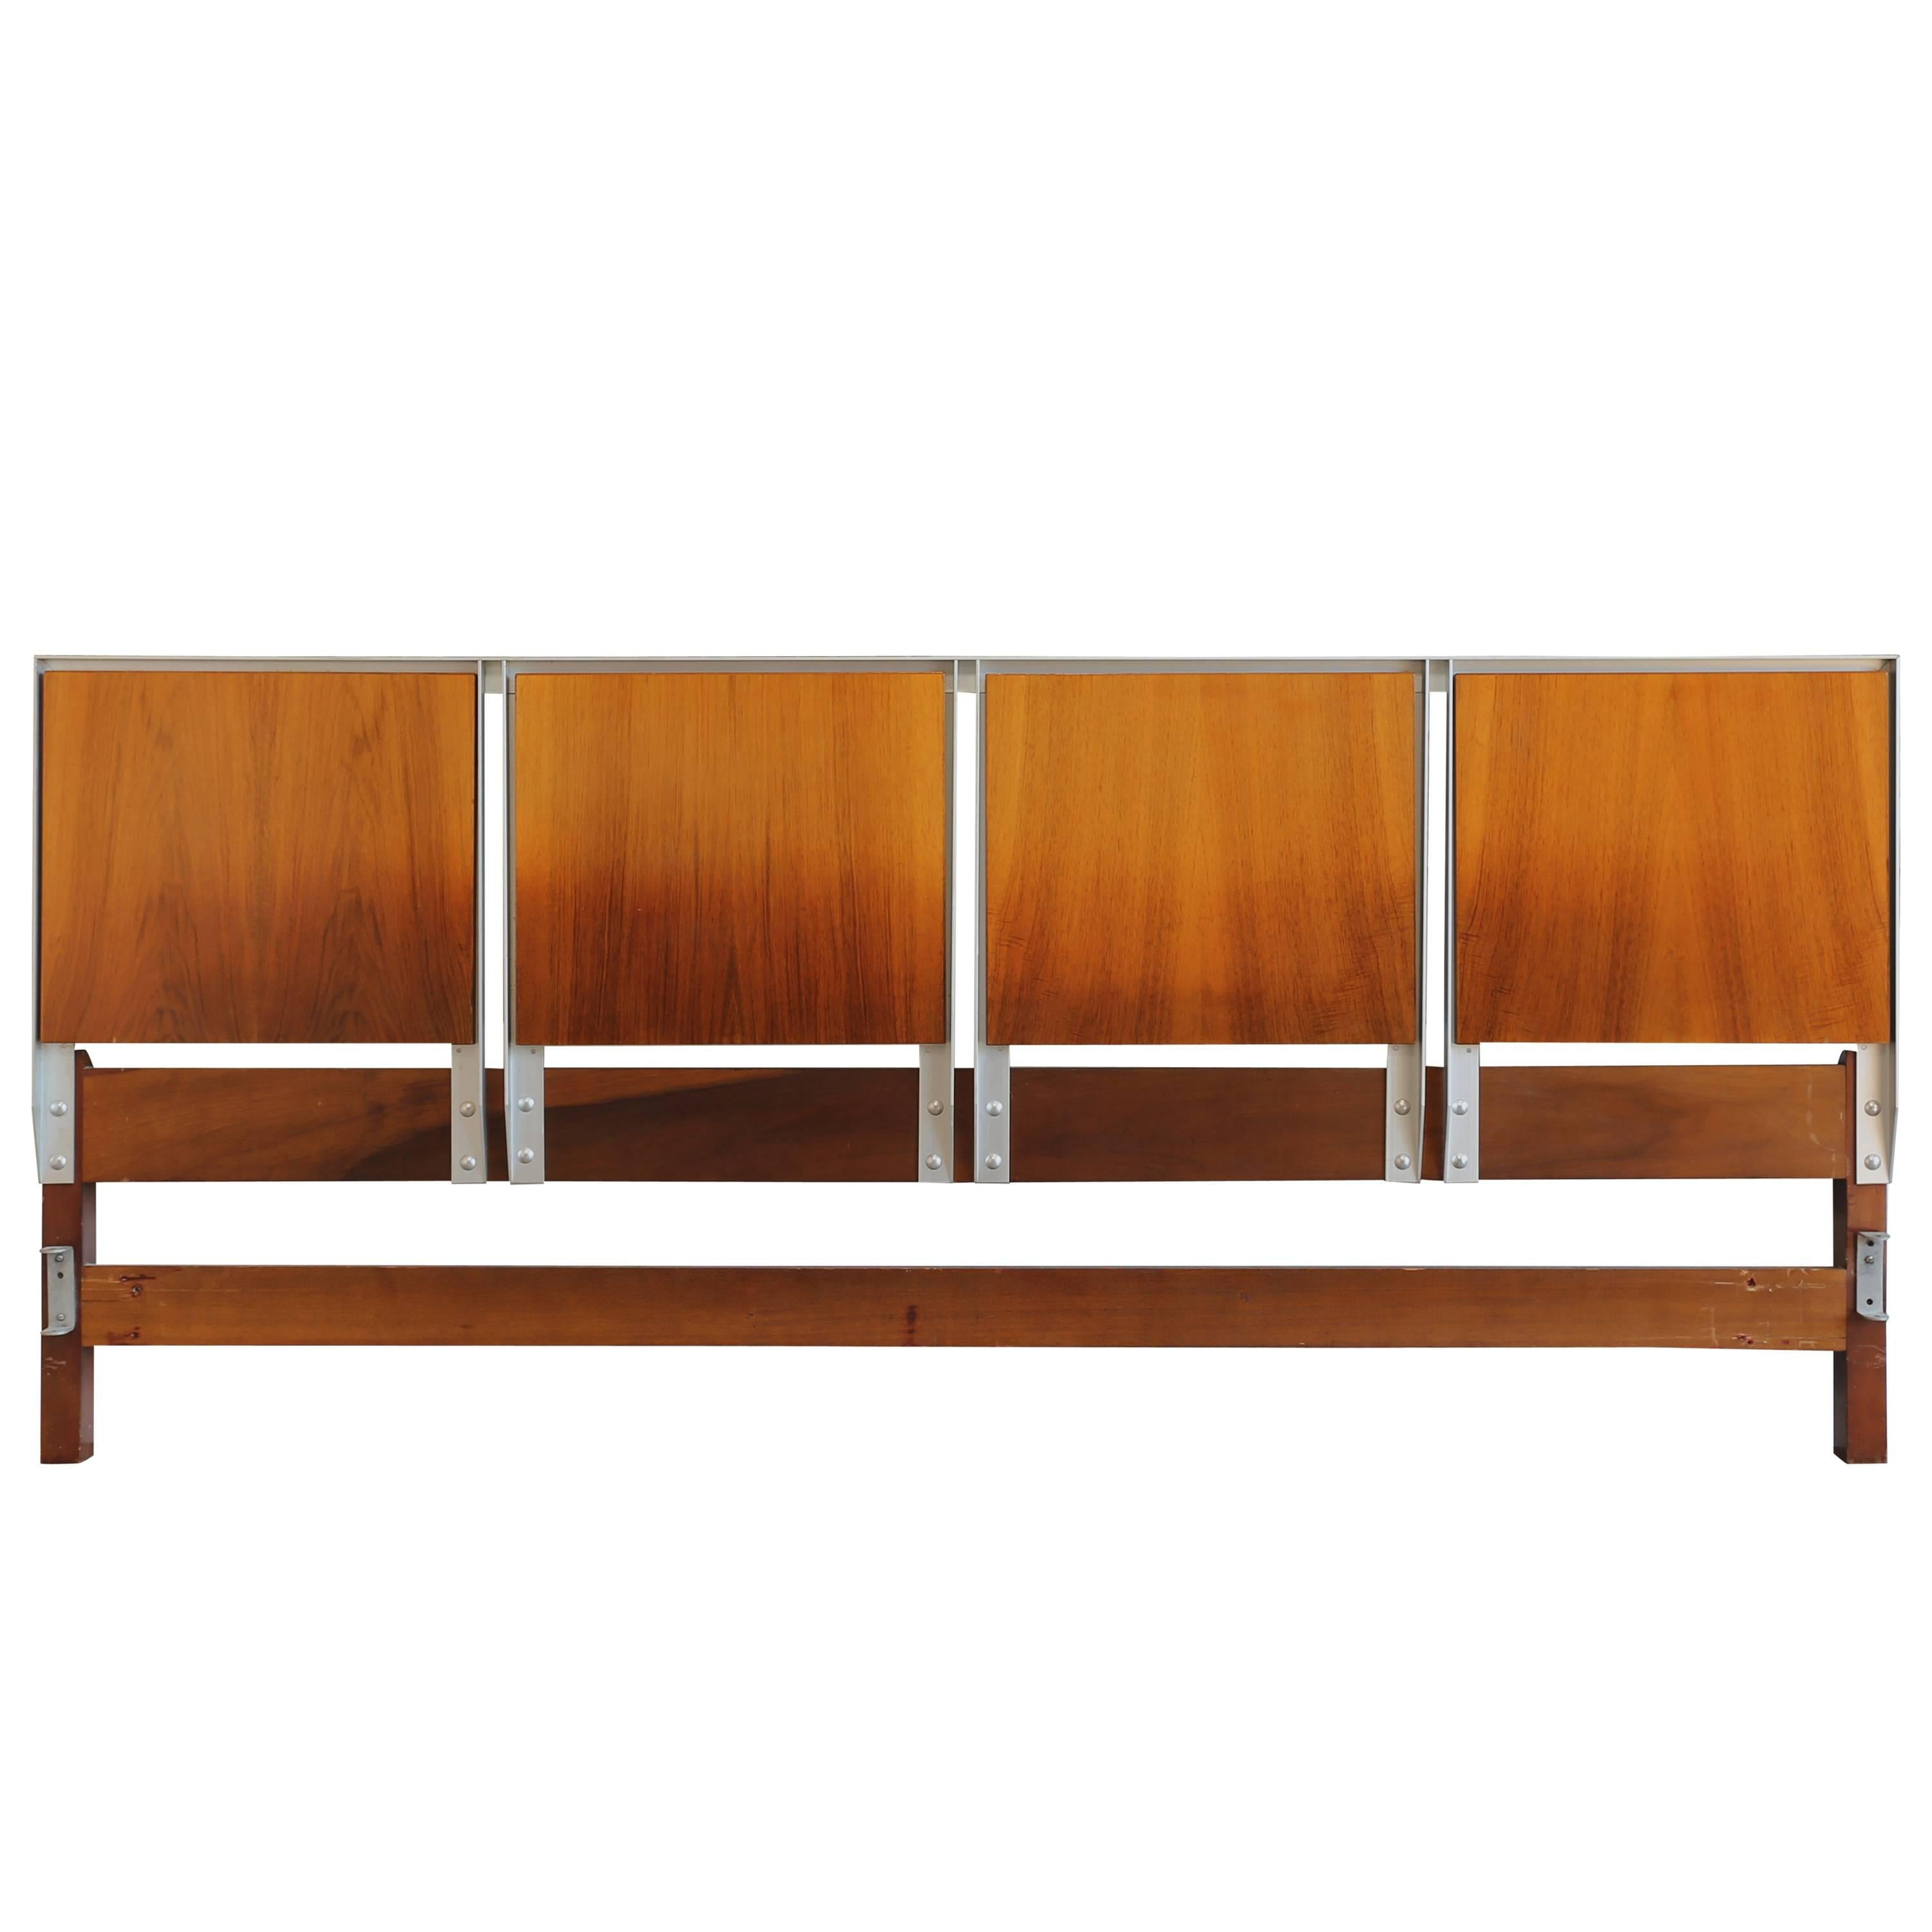 King-Size Headboard by Edmund Spence = MOVING SALE!!!!!!